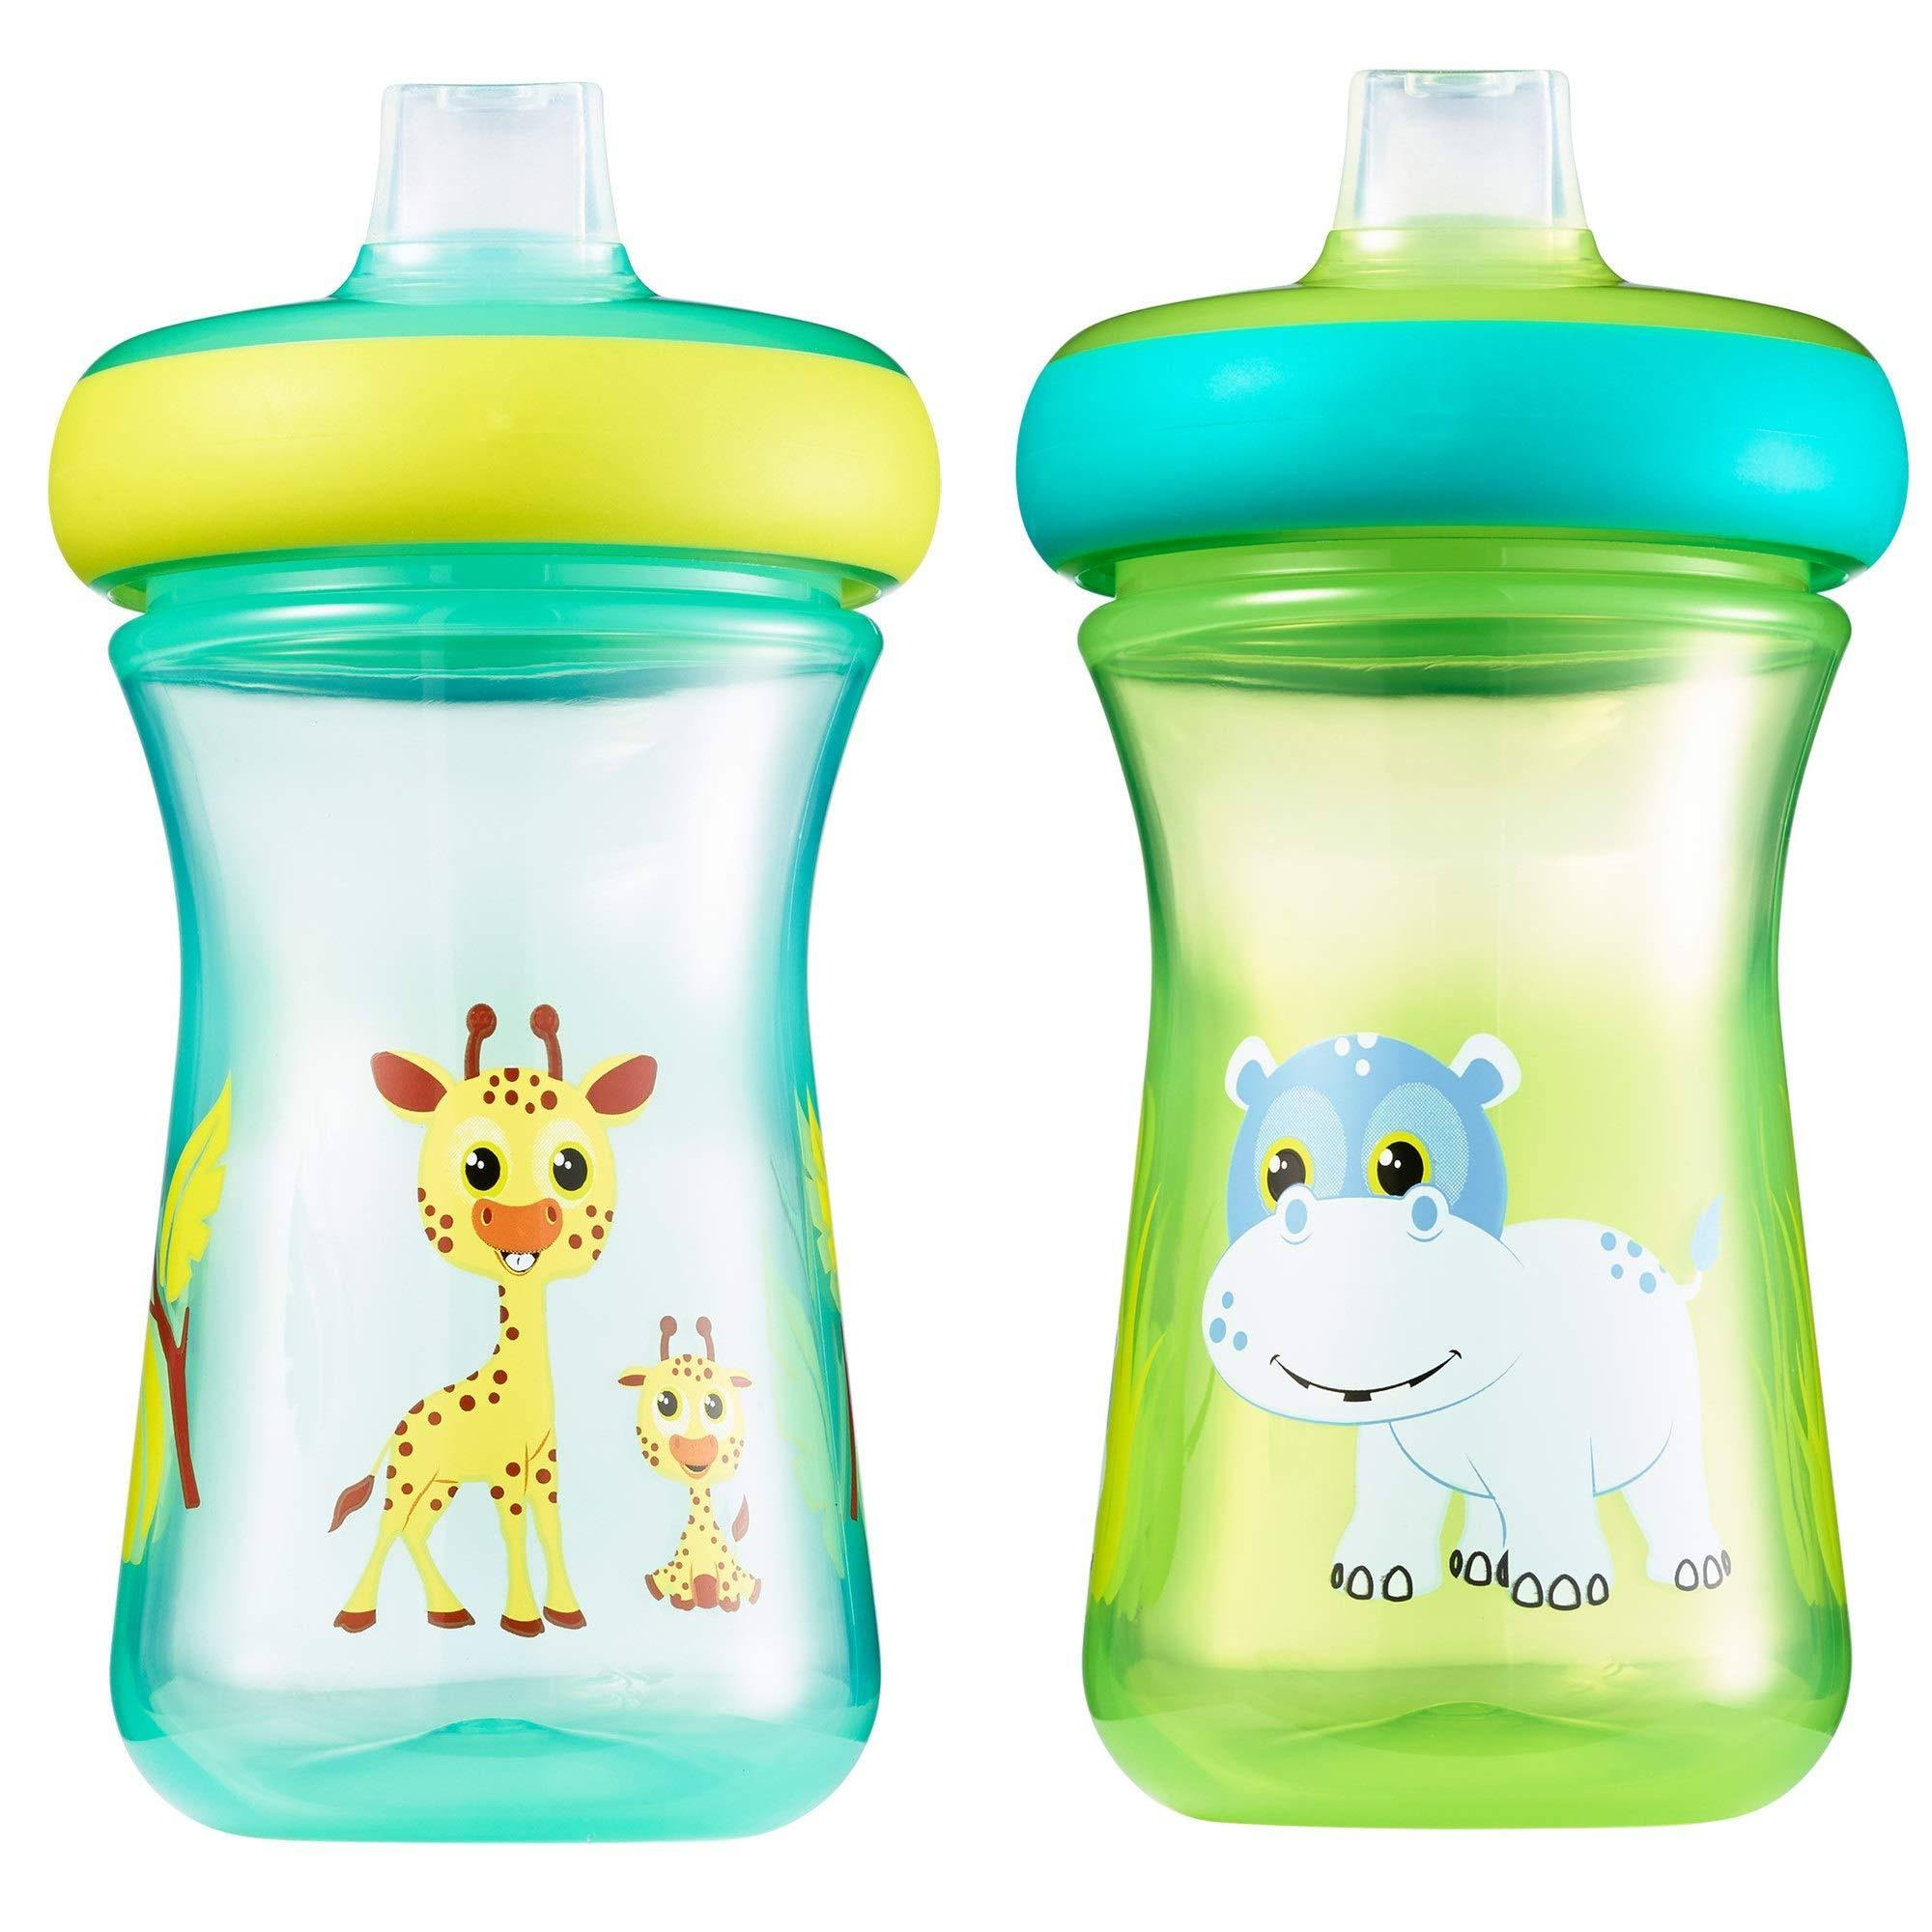 The First Years 2-Pack 9 oz. Insulated Soft Spout Safari Sippy Cups